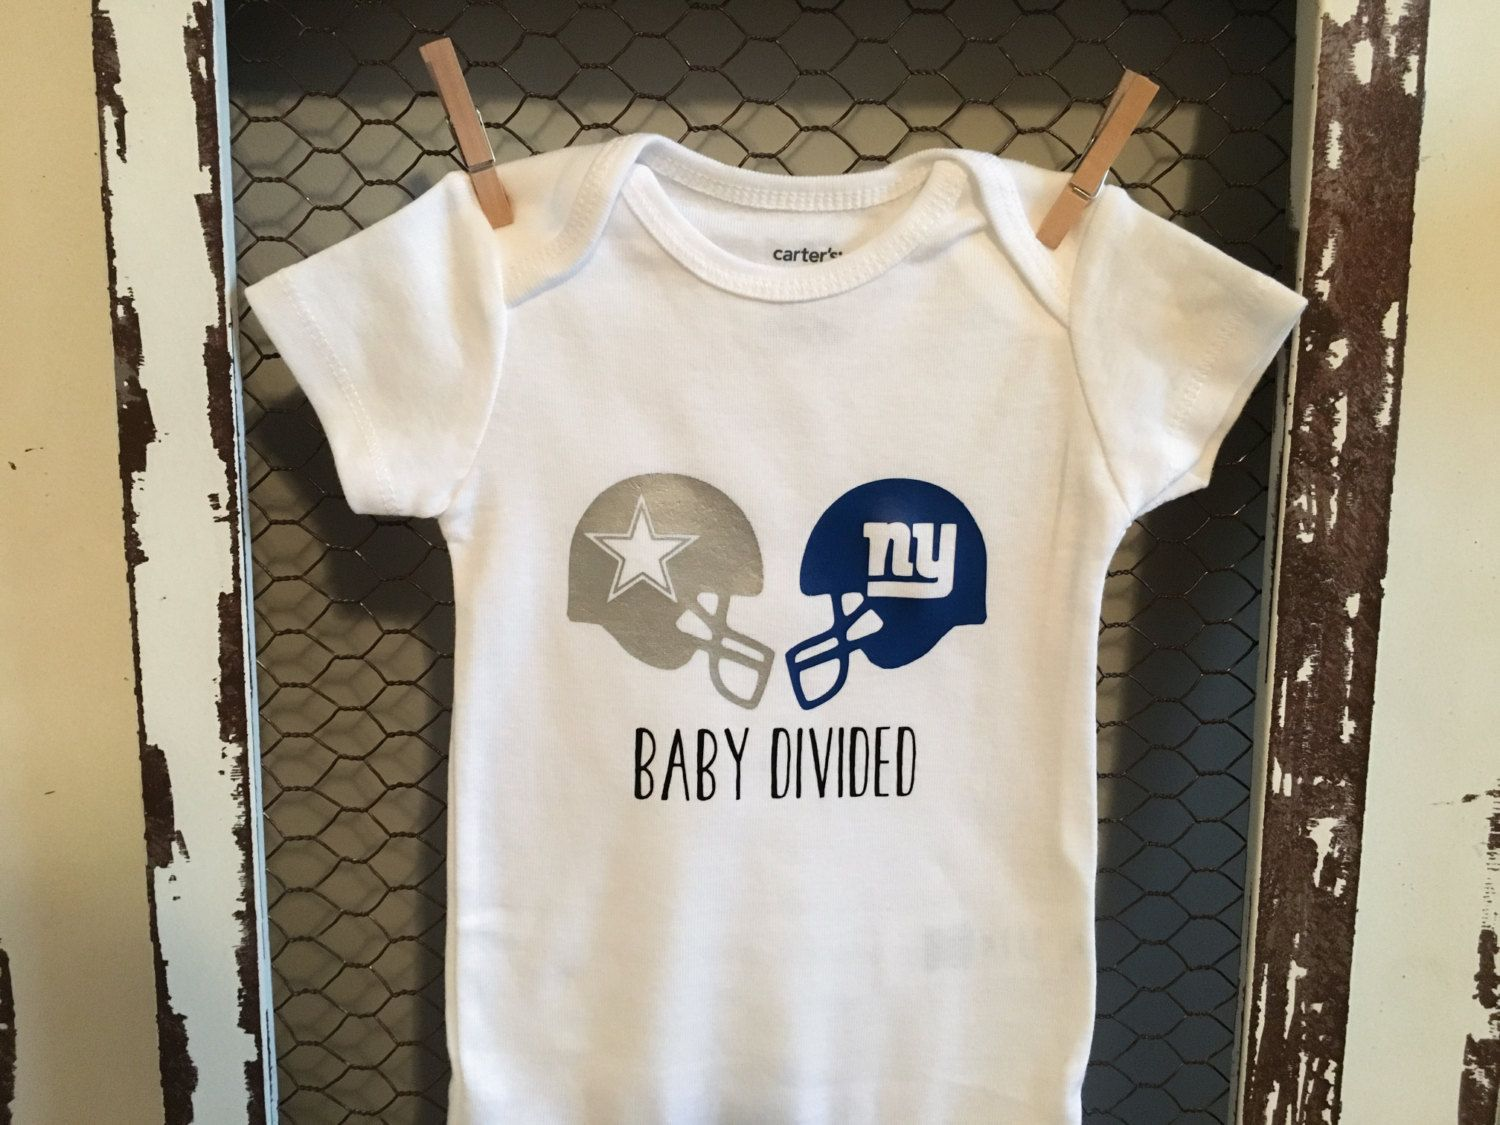 Dallas Cowboys vs New York Giants Baby Divided Onesie (Can Do Other Teams)   3e307c1ed